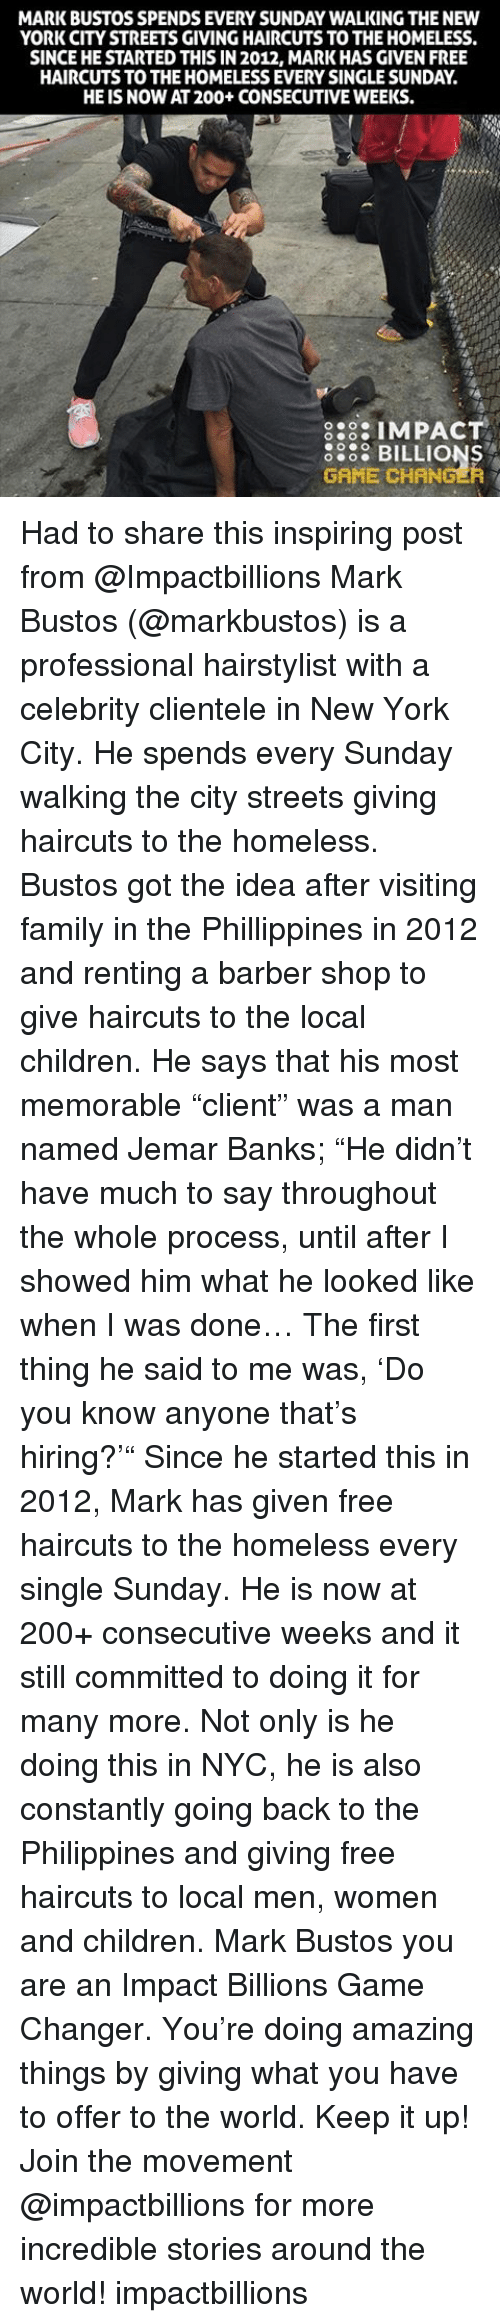 """Memorals: MARK BUSTOS SPENDS EVERY SUNDAY WALKING THE NEW  YORK CITY STREETS GIVINGHAIRCUTS TO THEHOMELESS.  SINCEHESTARTED THIS IN 2012, MARK HAS GIVEN FREE  HAIRCUTS TO THE HOMELESS EVERY SINGLESUNDAY  HE IS NOW AT200+ CONSECUTIVE WEEKS.  8:3: IMPACT  5868 BILLIONS  GAME CHANGER Had to share this inspiring post from @Impactbillions Mark Bustos (@markbustos) is a professional hairstylist with a celebrity clientele in New York City. He spends every Sunday walking the city streets giving haircuts to the homeless. Bustos got the idea after visiting family in the Phillippines in 2012 and renting a barber shop to give haircuts to the local children. He says that his most memorable """"client"""" was a man named Jemar Banks; """"He didn't have much to say throughout the whole process, until after I showed him what he looked like when I was done… The first thing he said to me was, 'Do you know anyone that's hiring?'"""" Since he started this in 2012, Mark has given free haircuts to the homeless every single Sunday. He is now at 200+ consecutive weeks and it still committed to doing it for many more. Not only is he doing this in NYC, he is also constantly going back to the Philippines and giving free haircuts to local men, women and children. Mark Bustos you are an Impact Billions Game Changer. You're doing amazing things by giving what you have to offer to the world. Keep it up! Join the movement @impactbillions for more incredible stories around the world! impactbillions"""